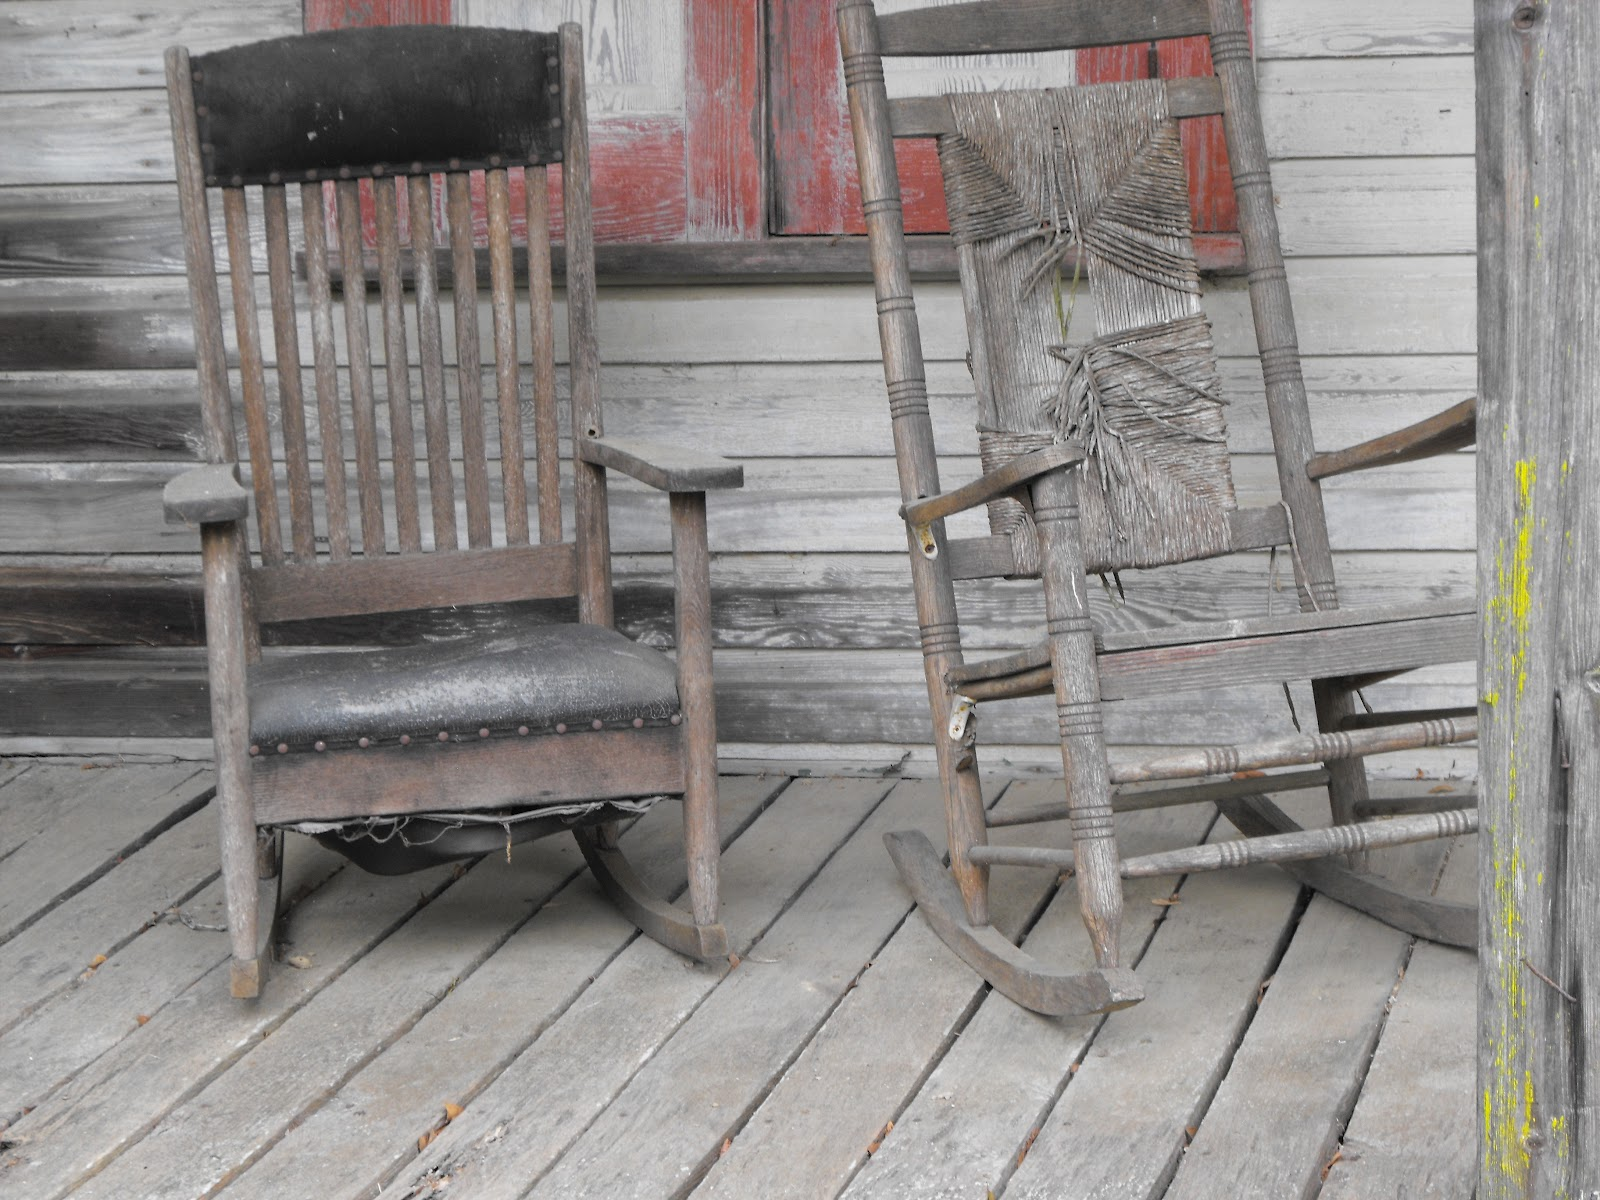 alabama rocking chair yellow chairs for sale monday musings perhaps i was granny s favorite secretly thought old